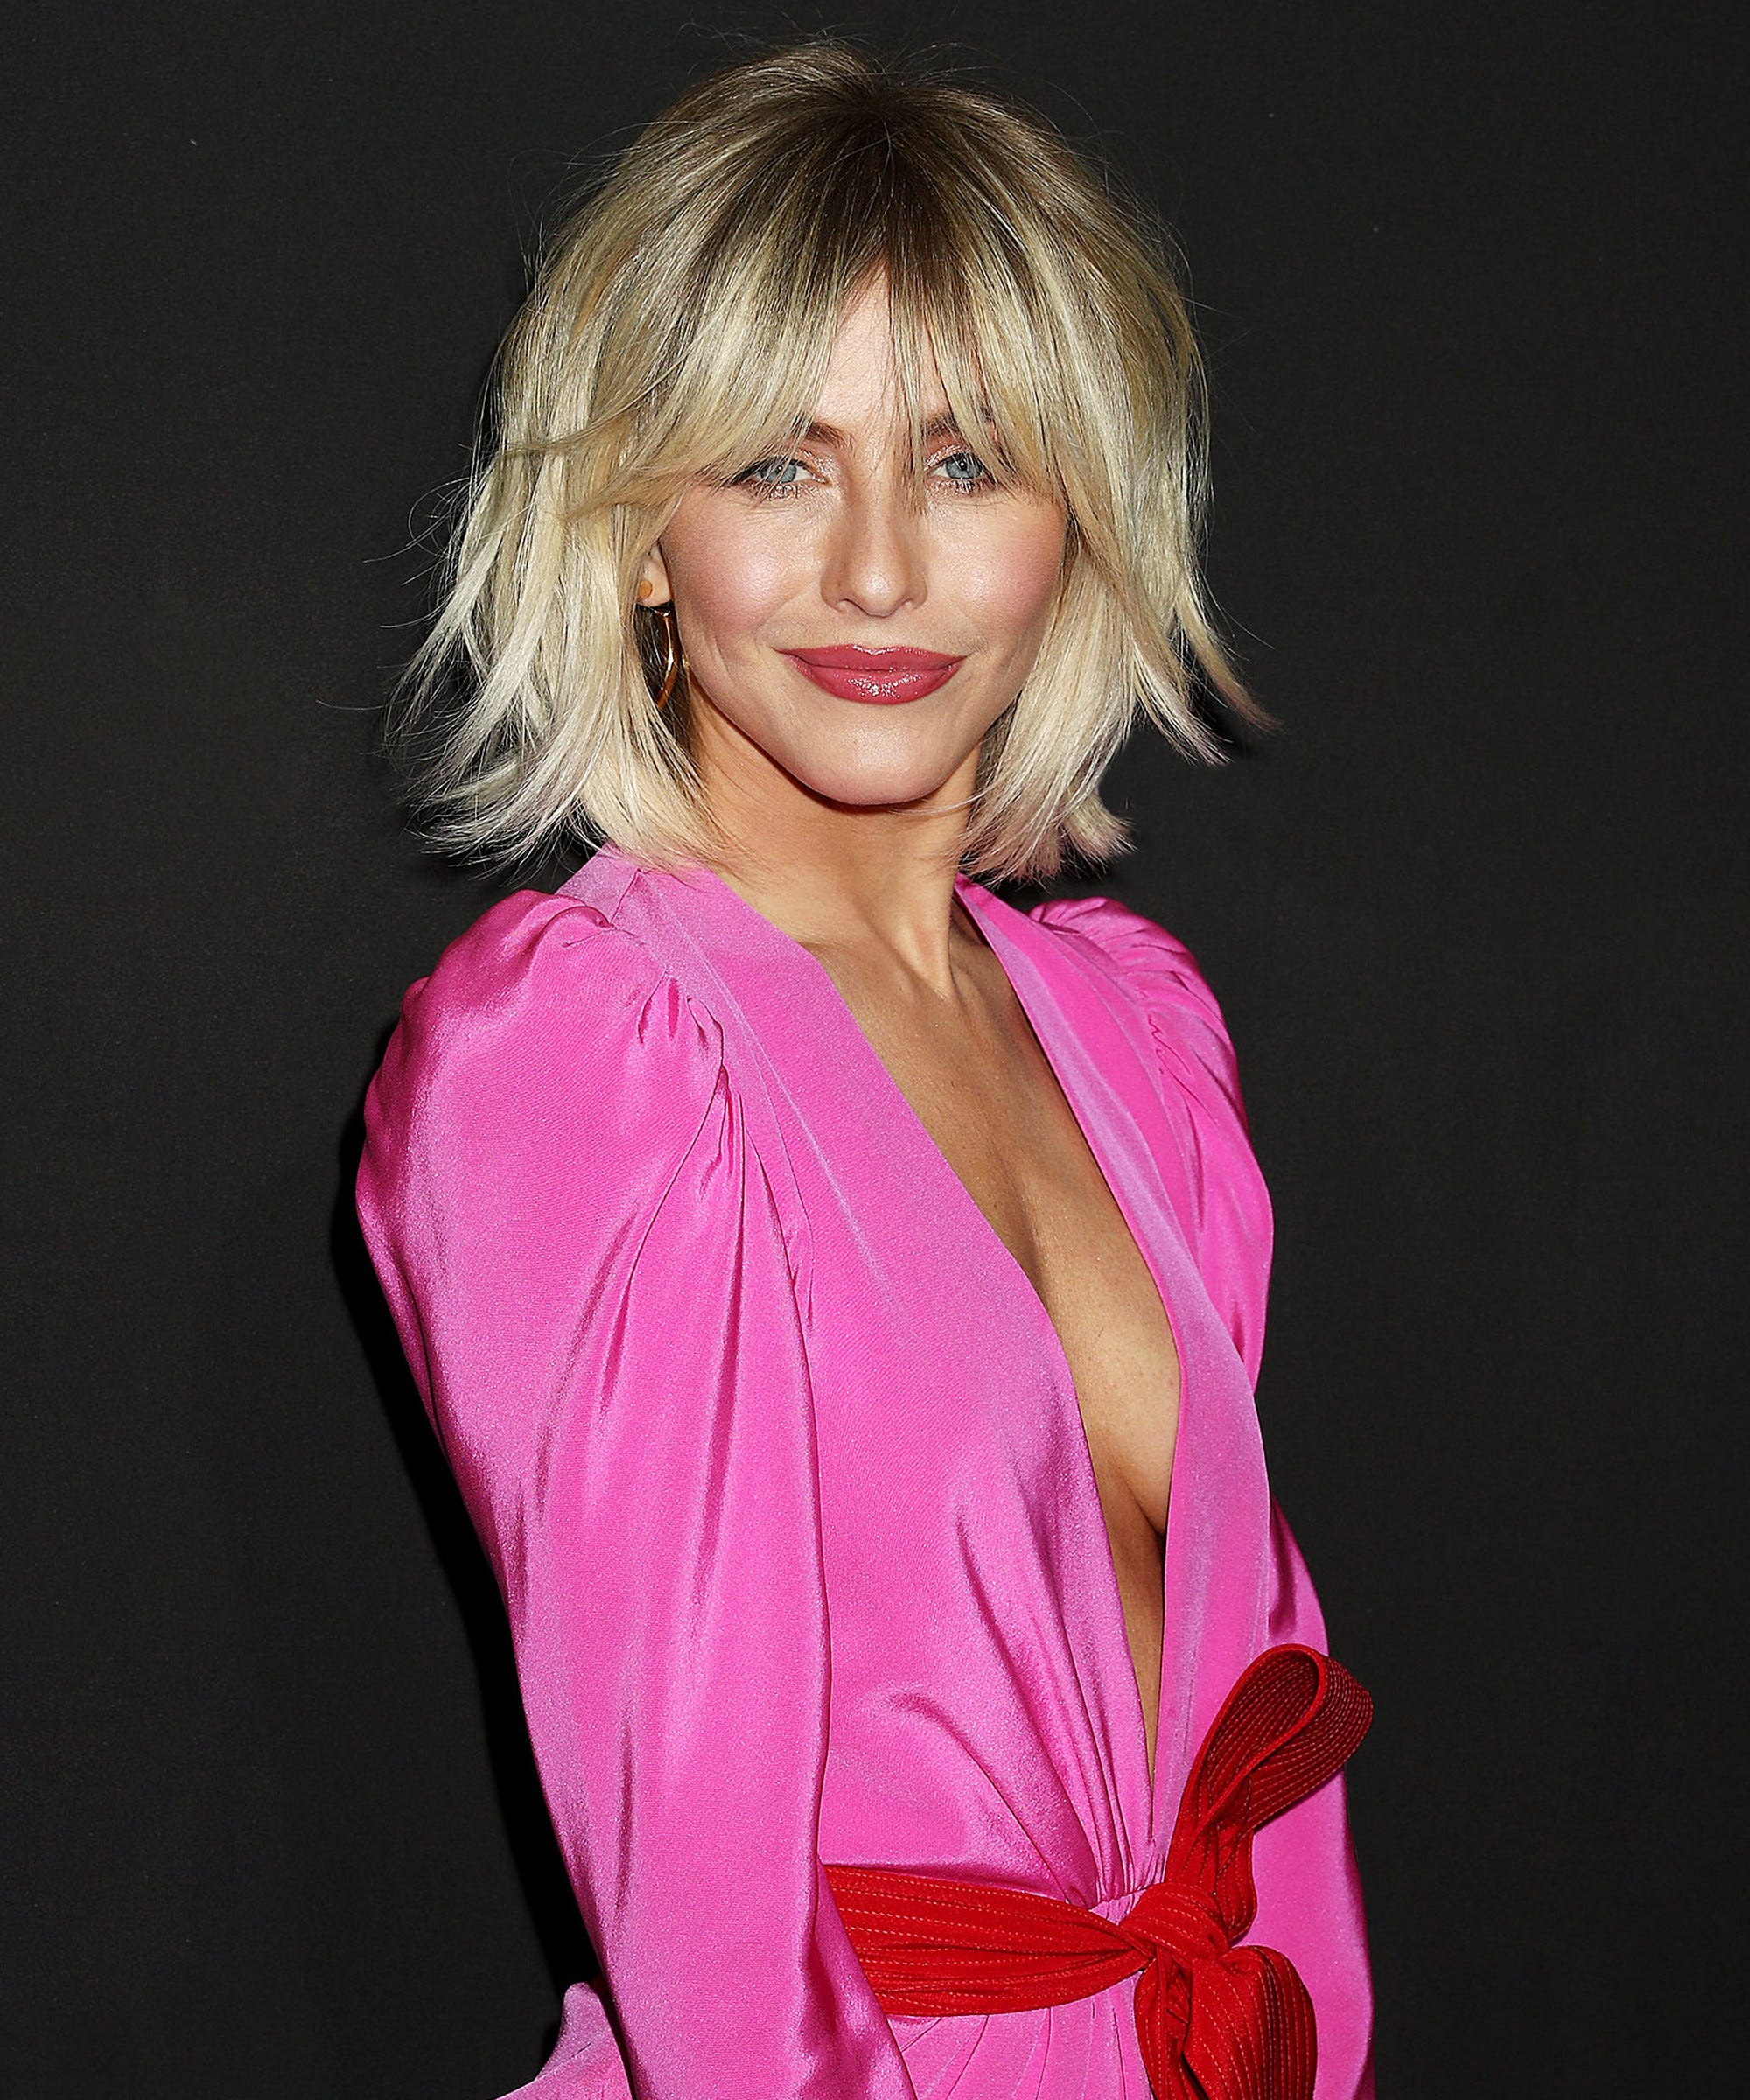 Julianne Hough Gets New Shag Haircut With Bangs Throughout Pink Shaggy Haircuts (View 12 of 20)